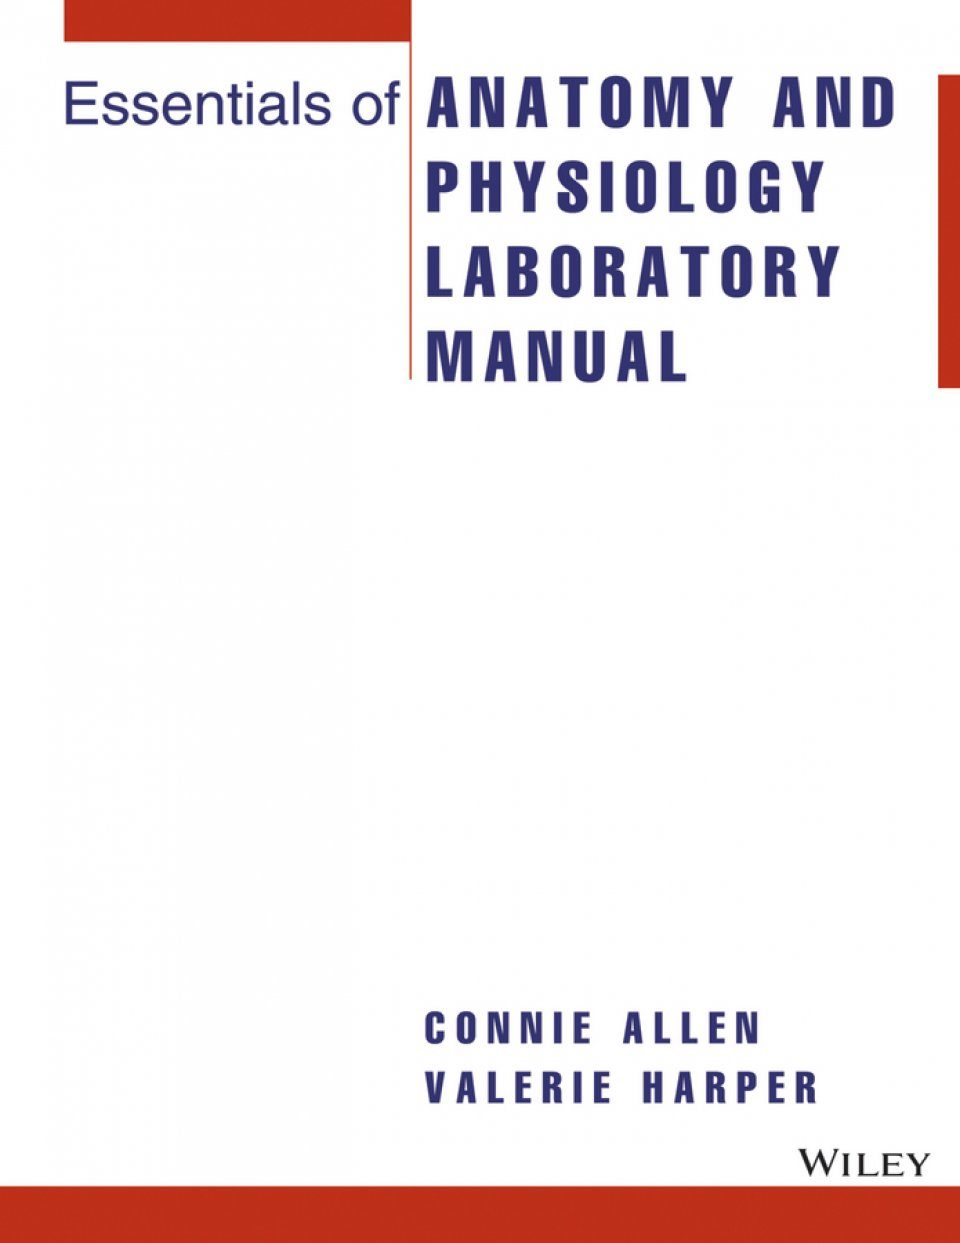 Essentials of Anatomy and Physiology Laboratory Manual | NHBS Academic &  Professional Books